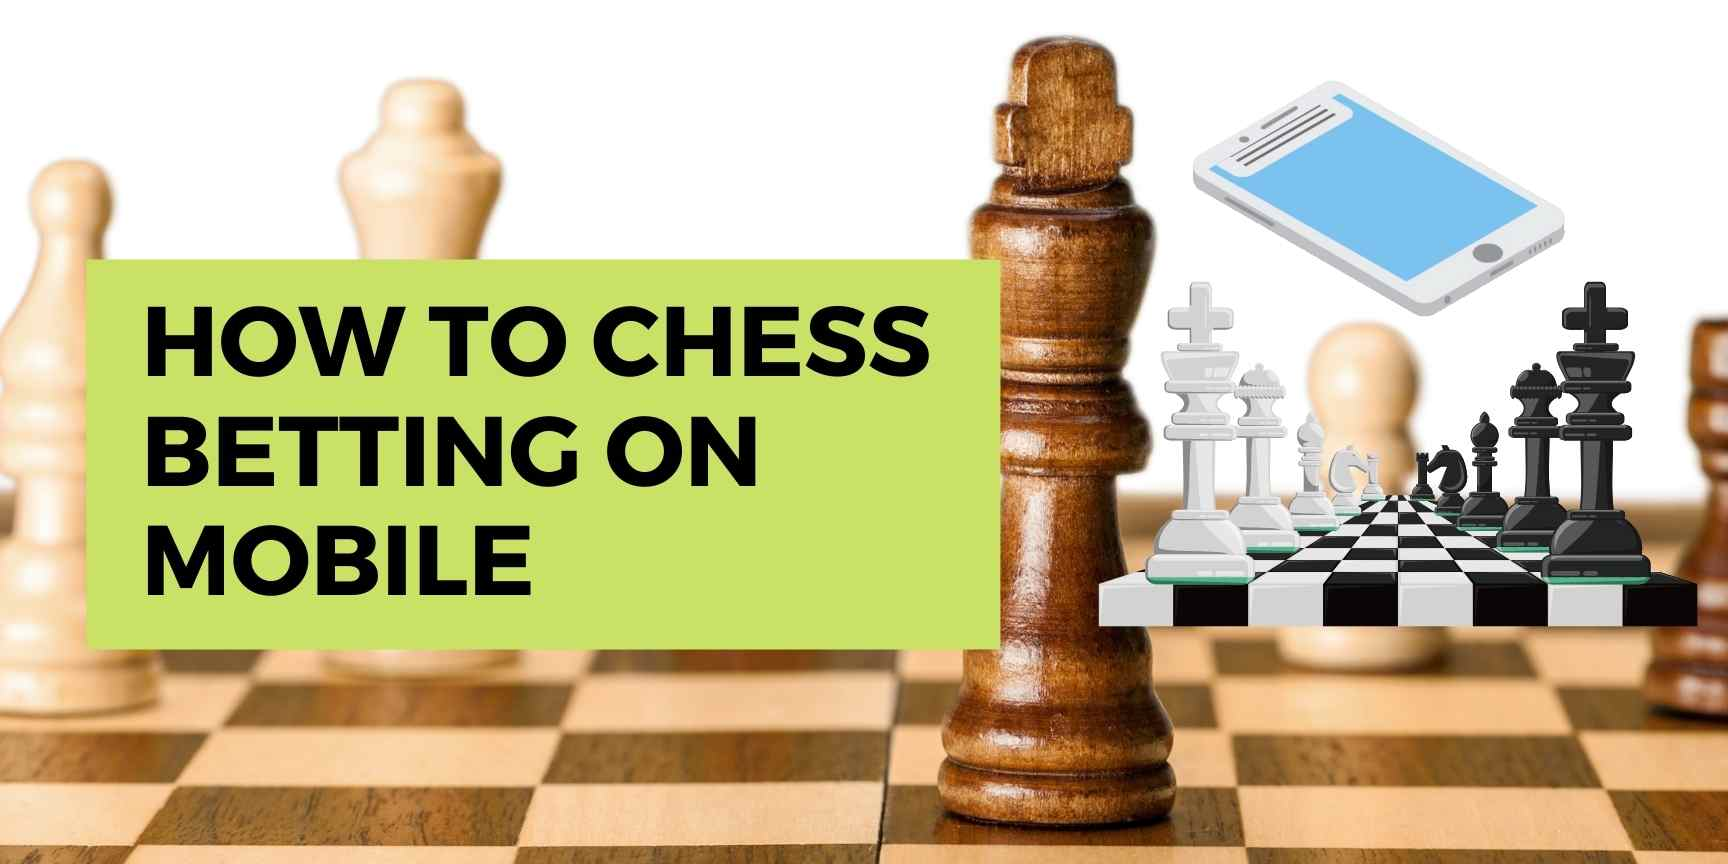 chess betting mobile